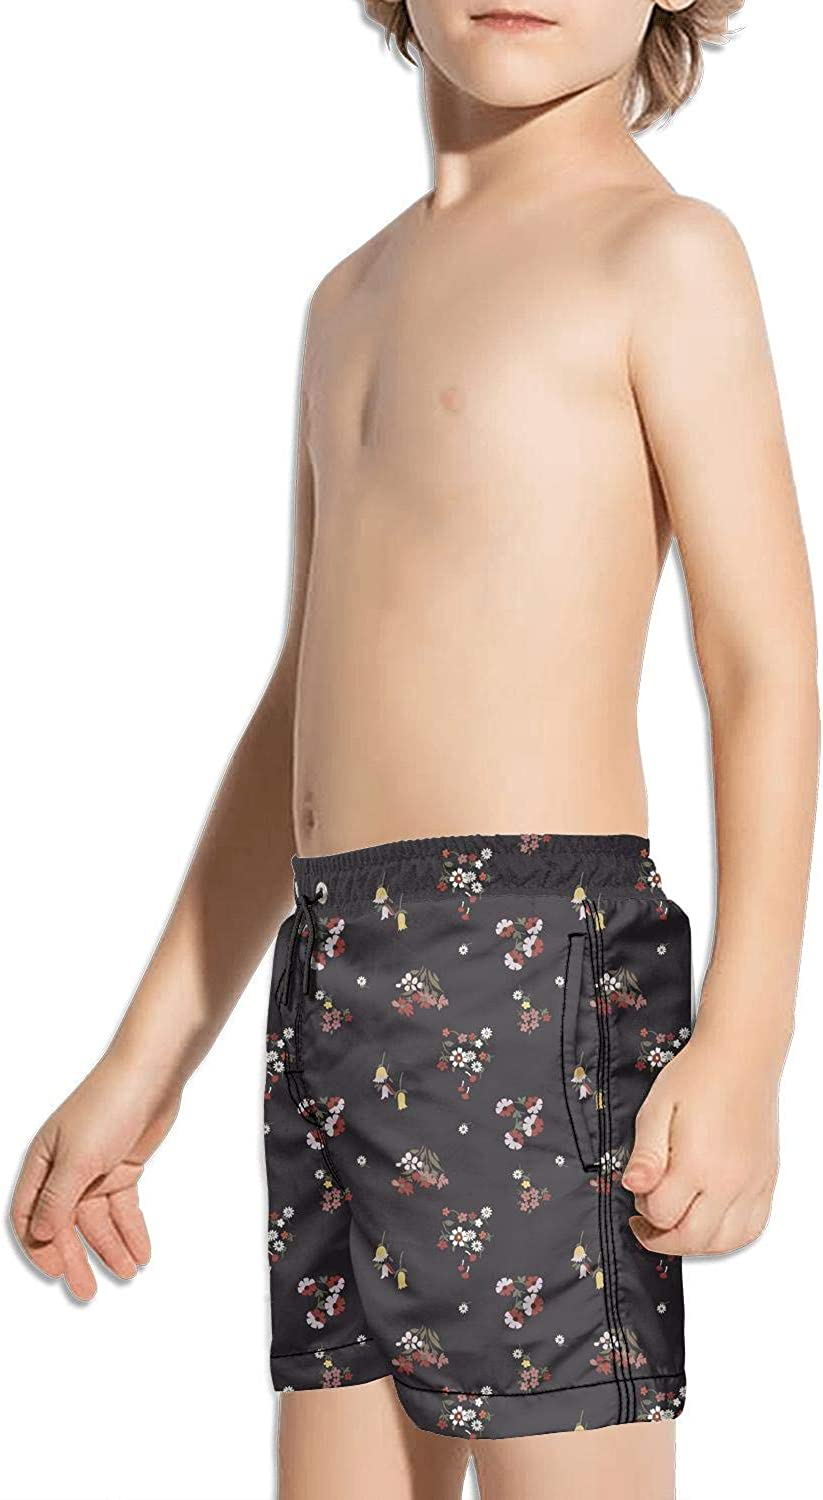 White Small Daisy Red Flower On Black Childrens Beach Pants Board Shorts Running high Waisted Floral Shorts